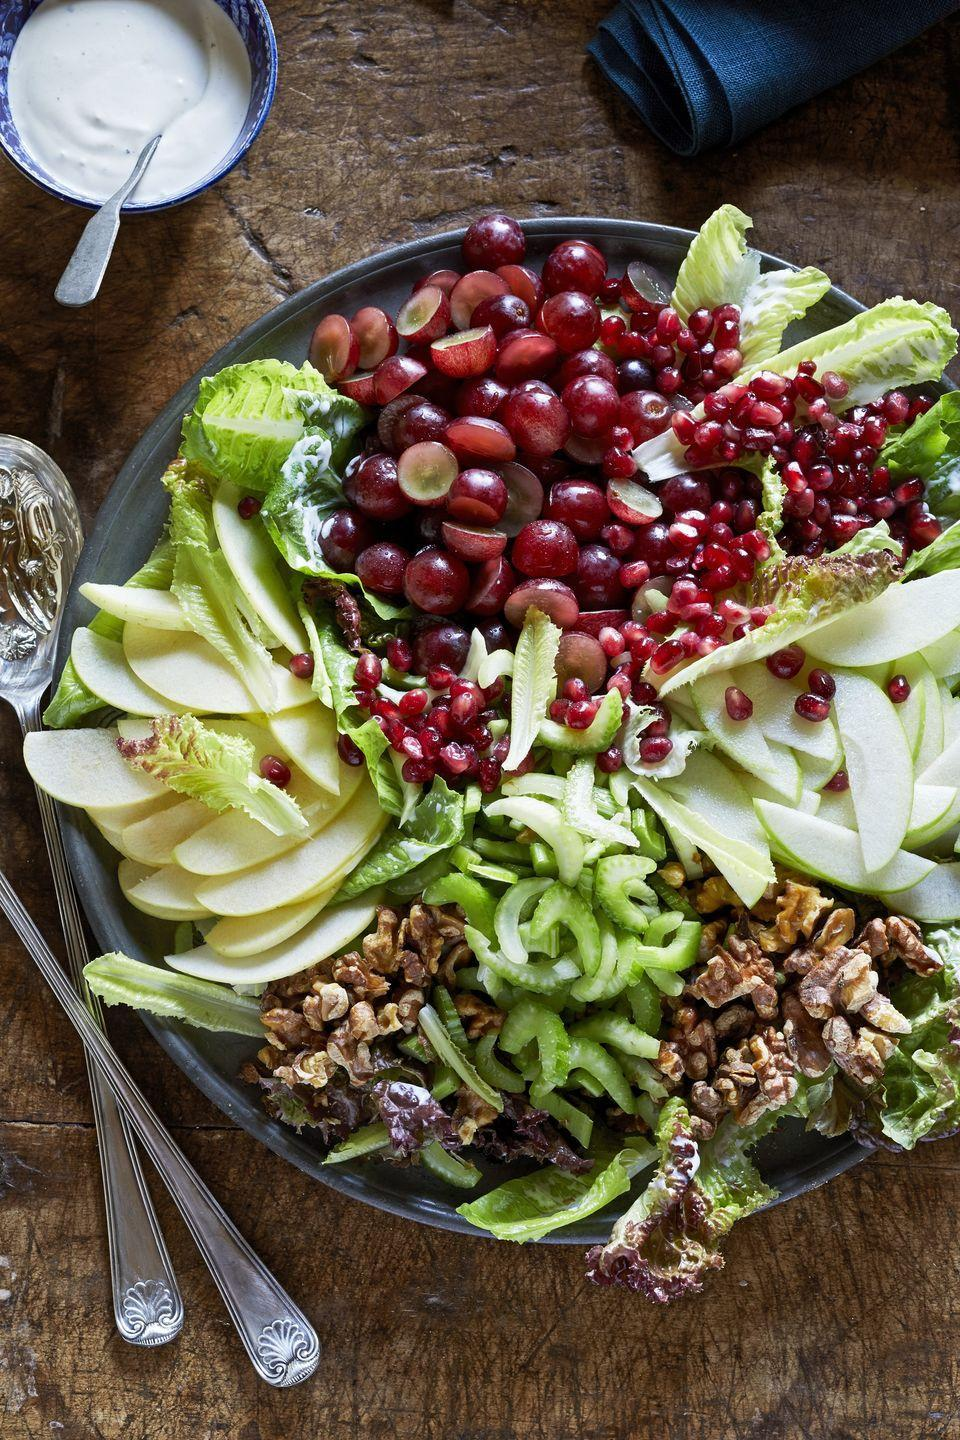 "<p>We love when a traditional dish gets a fresh spin. That's the case for this Waldorf salad, which separates its ingredients into sections—it'll even work for picky eaters!</p><p><strong><a href=""https://www.countryliving.com/food-drinks/a29131841/composed-waldorf-salad/"" rel=""nofollow noopener"" target=""_blank"" data-ylk=""slk:Get the recipe"" class=""link rapid-noclick-resp"">Get the recipe</a>.</strong></p><p><strong><a class=""link rapid-noclick-resp"" href=""https://www.amazon.com/Lipper-International-Salad-Hands-Brown/dp/B00FSBE82M/?tag=syn-yahoo-20&ascsubtag=%5Bartid%7C10050.g.896%5Bsrc%7Cyahoo-us"" rel=""nofollow noopener"" target=""_blank"" data-ylk=""slk:SHOP SALAD BOWLS"">SHOP SALAD BOWLS</a><br></strong></p>"